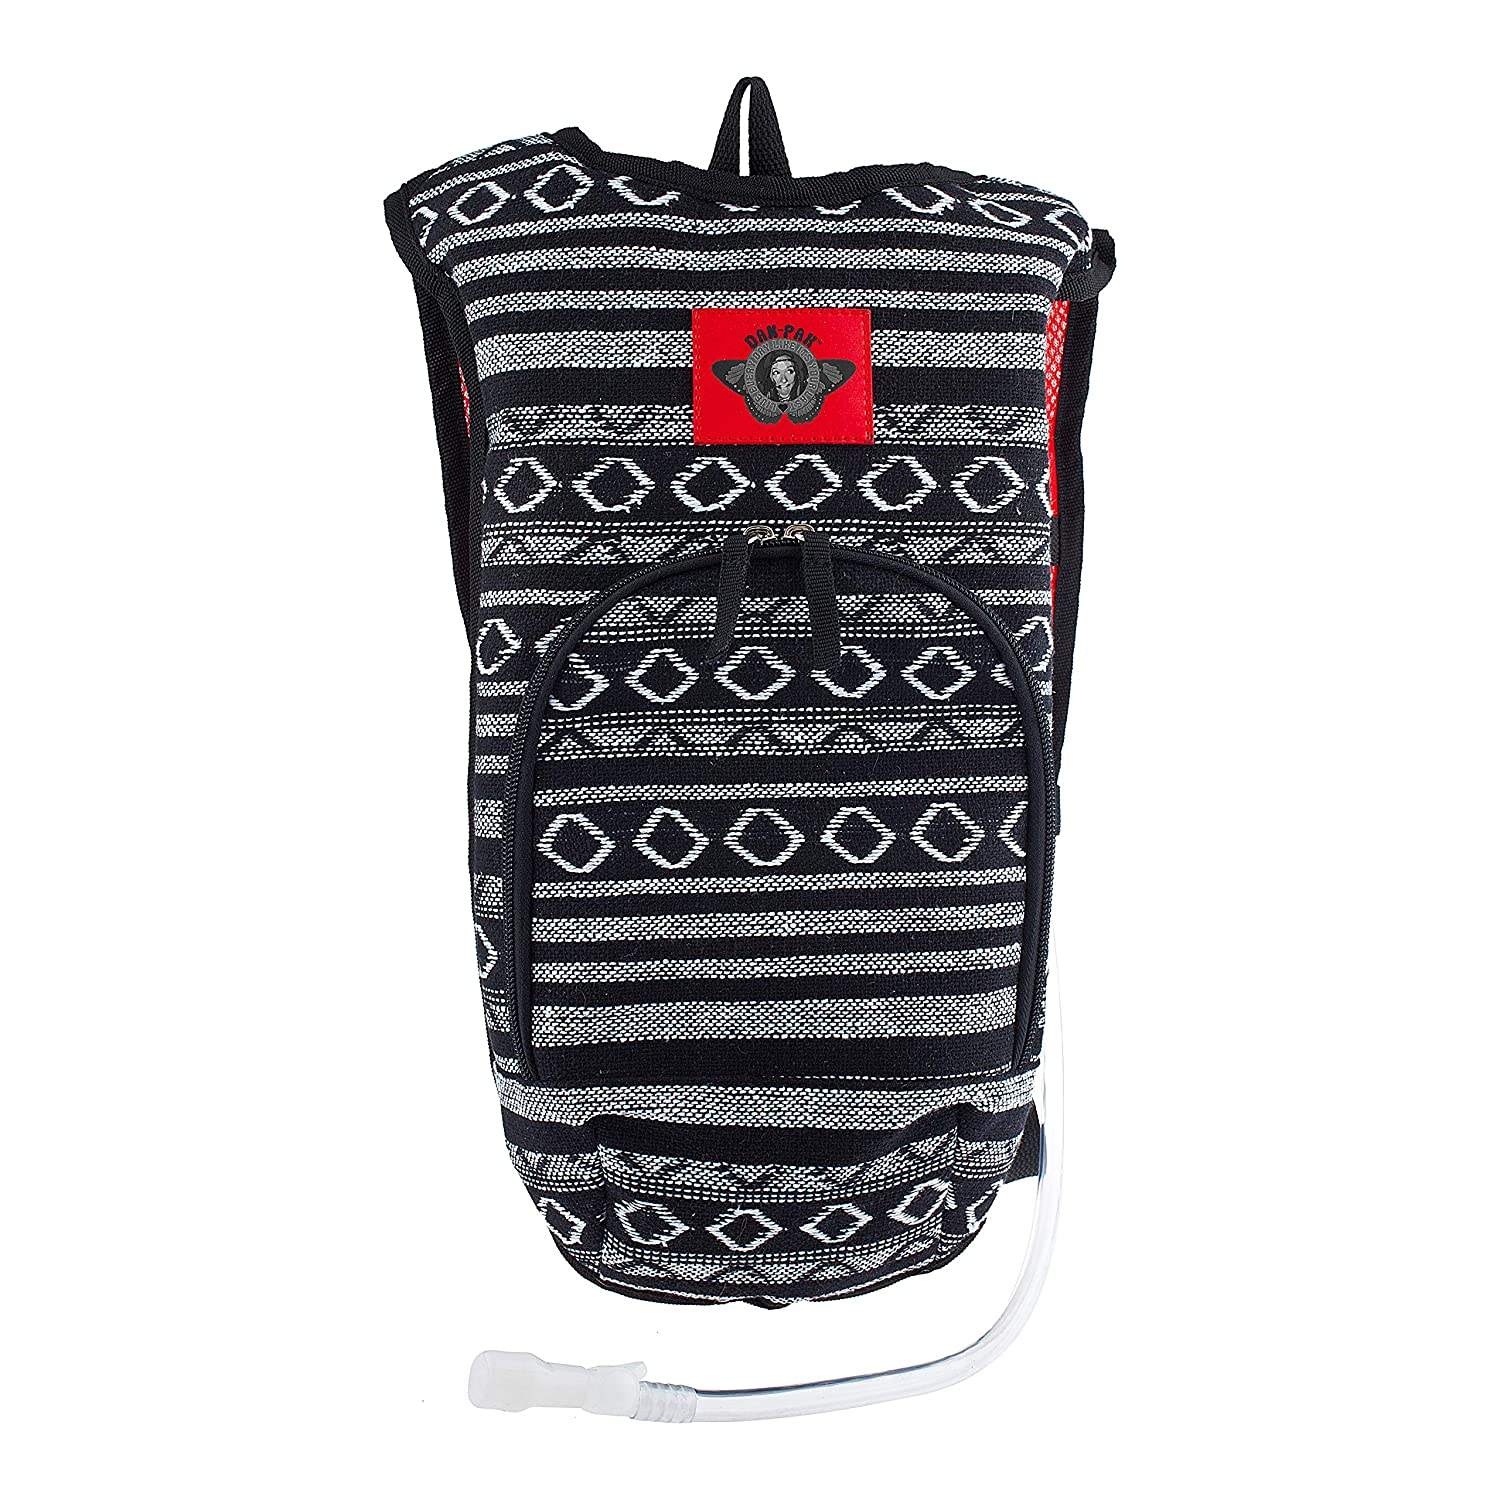 Dan-Pak Rave Hydration Pack 2l- Hippie Trip Black Red -Black and White Woven Tribal Design – Perfect for Music Festivals and Camping